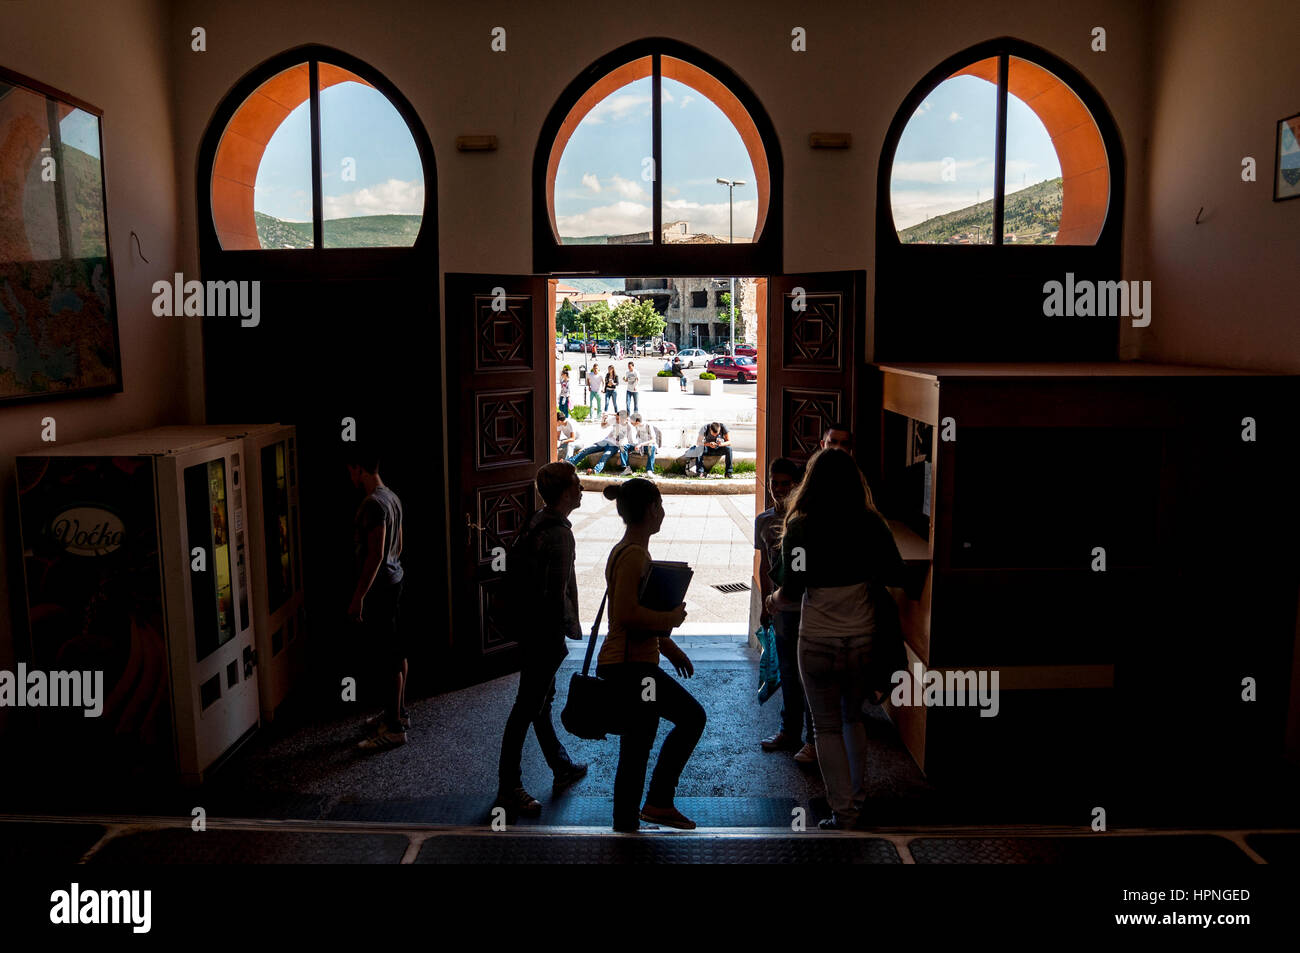 Mostar secondary school entrance, Bosnia Herzegovina - Stock Image